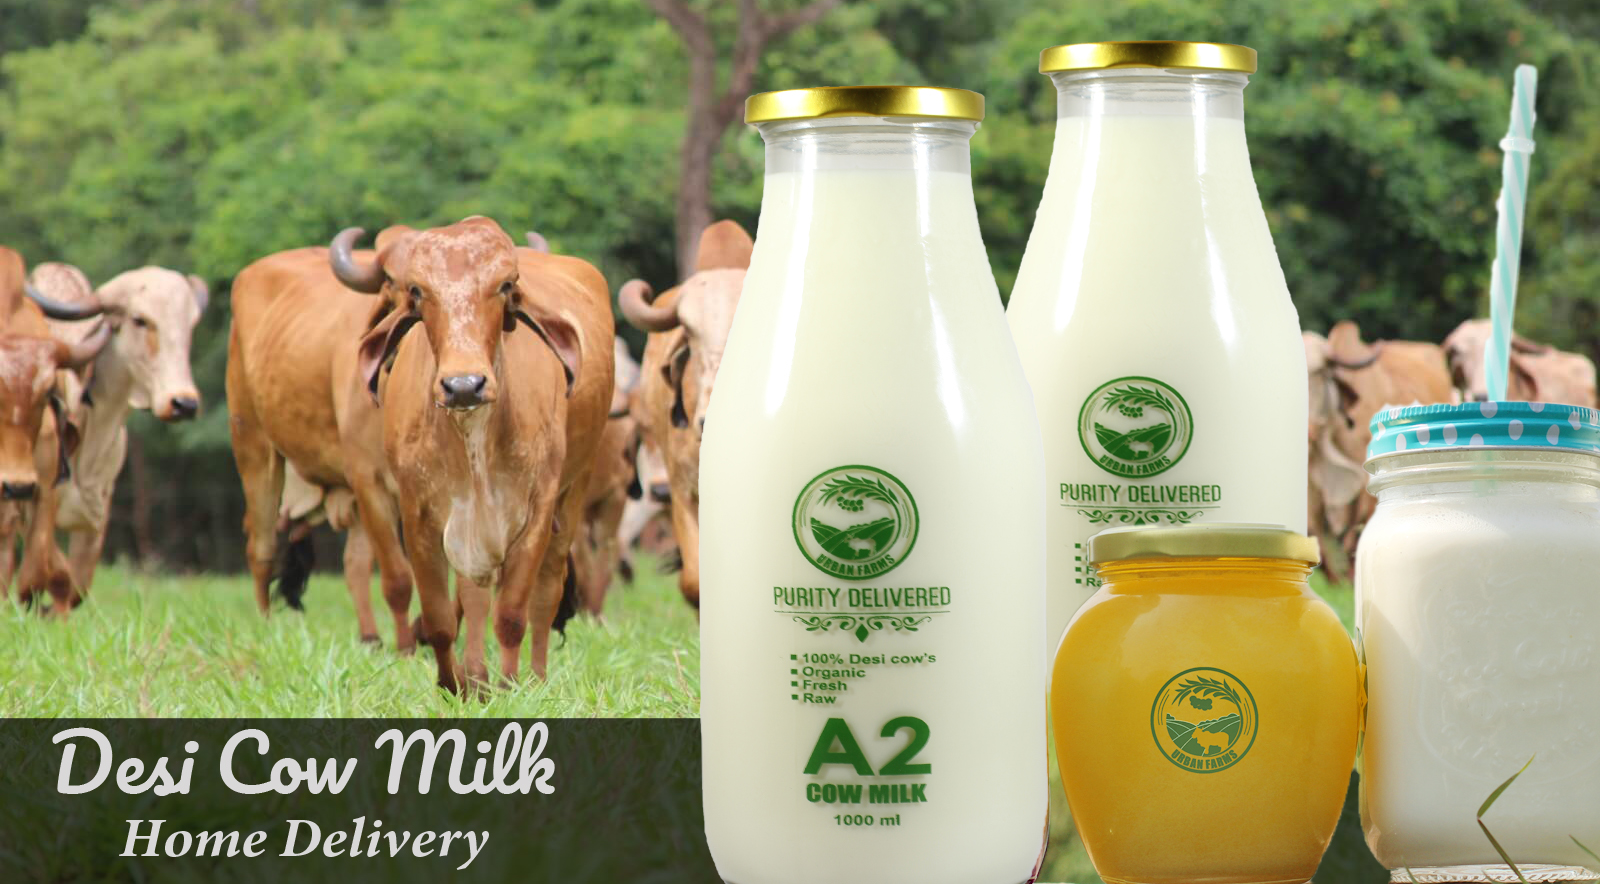 Fresh Desi Cow Milk Home Delivery